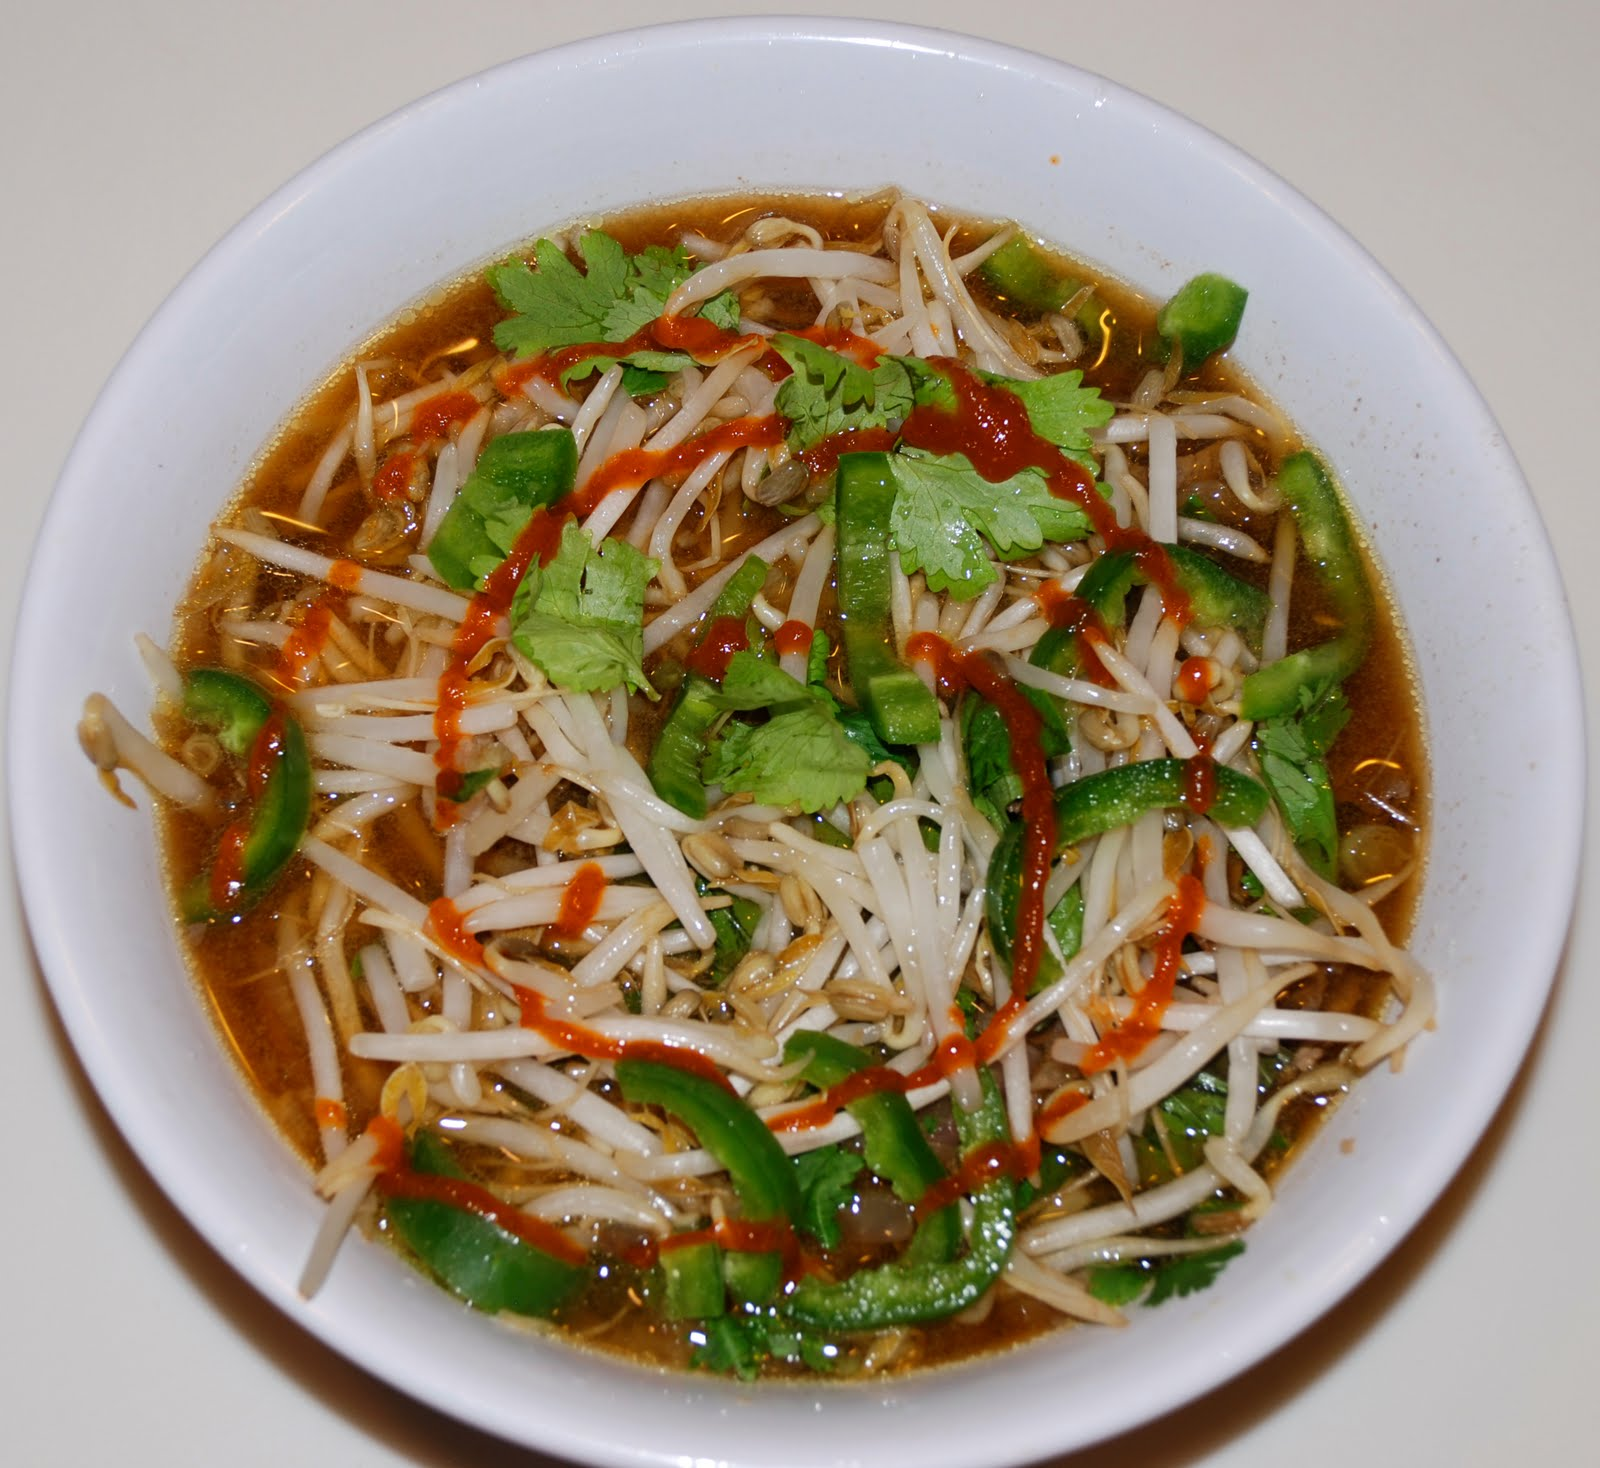 Life is Delicious: Pho or Vietnamese Beef Noodle Soup